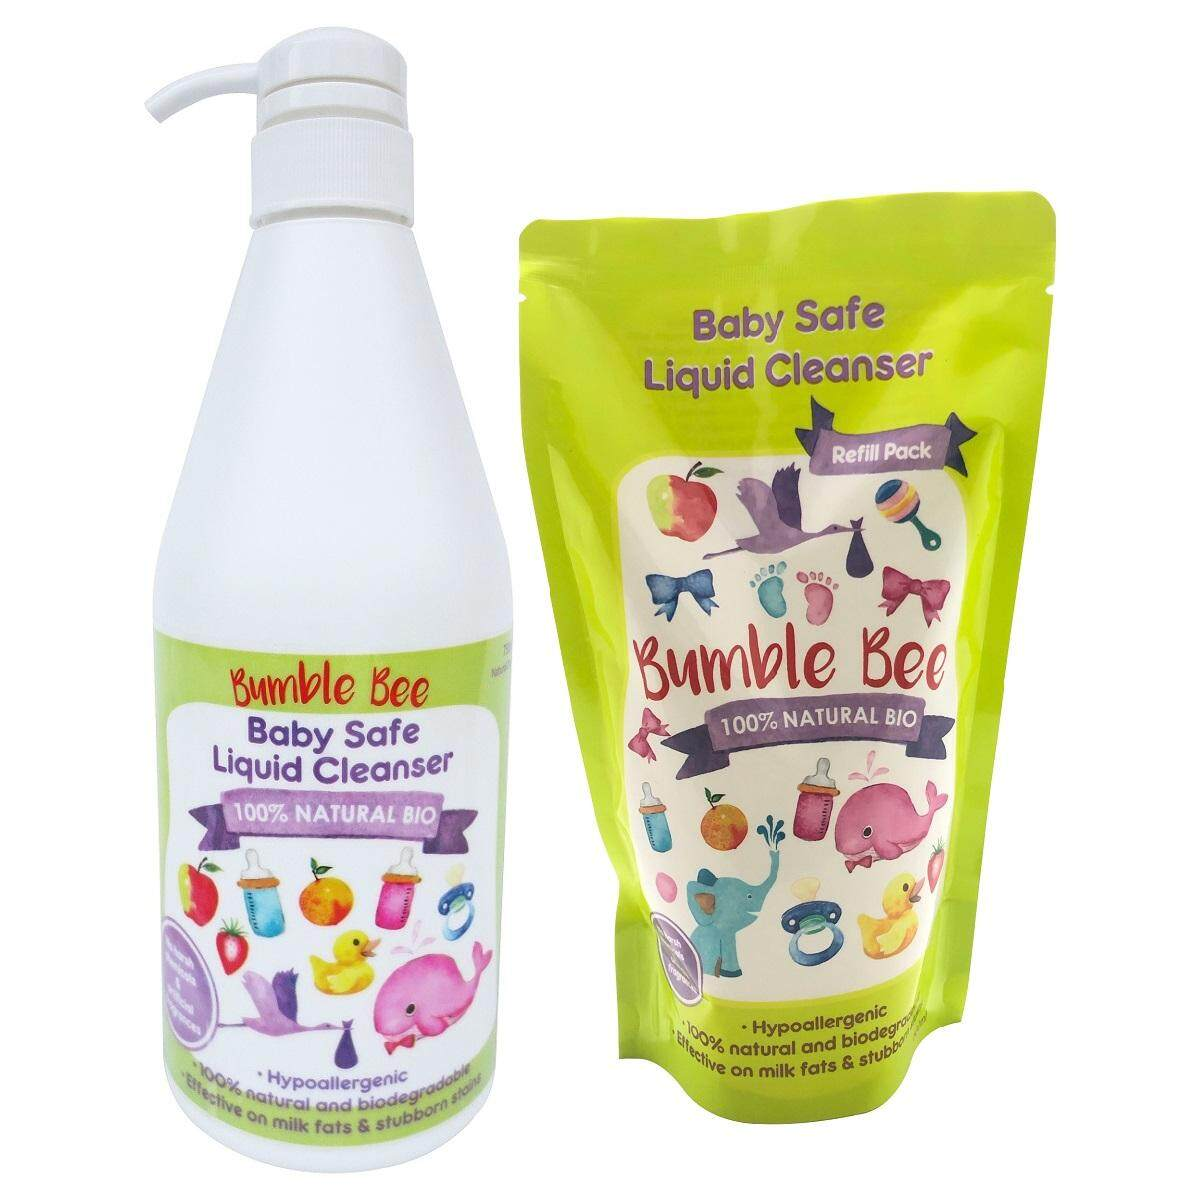 Bumble Bee Baby Safe Liquid Cleanser (Twin Pack)